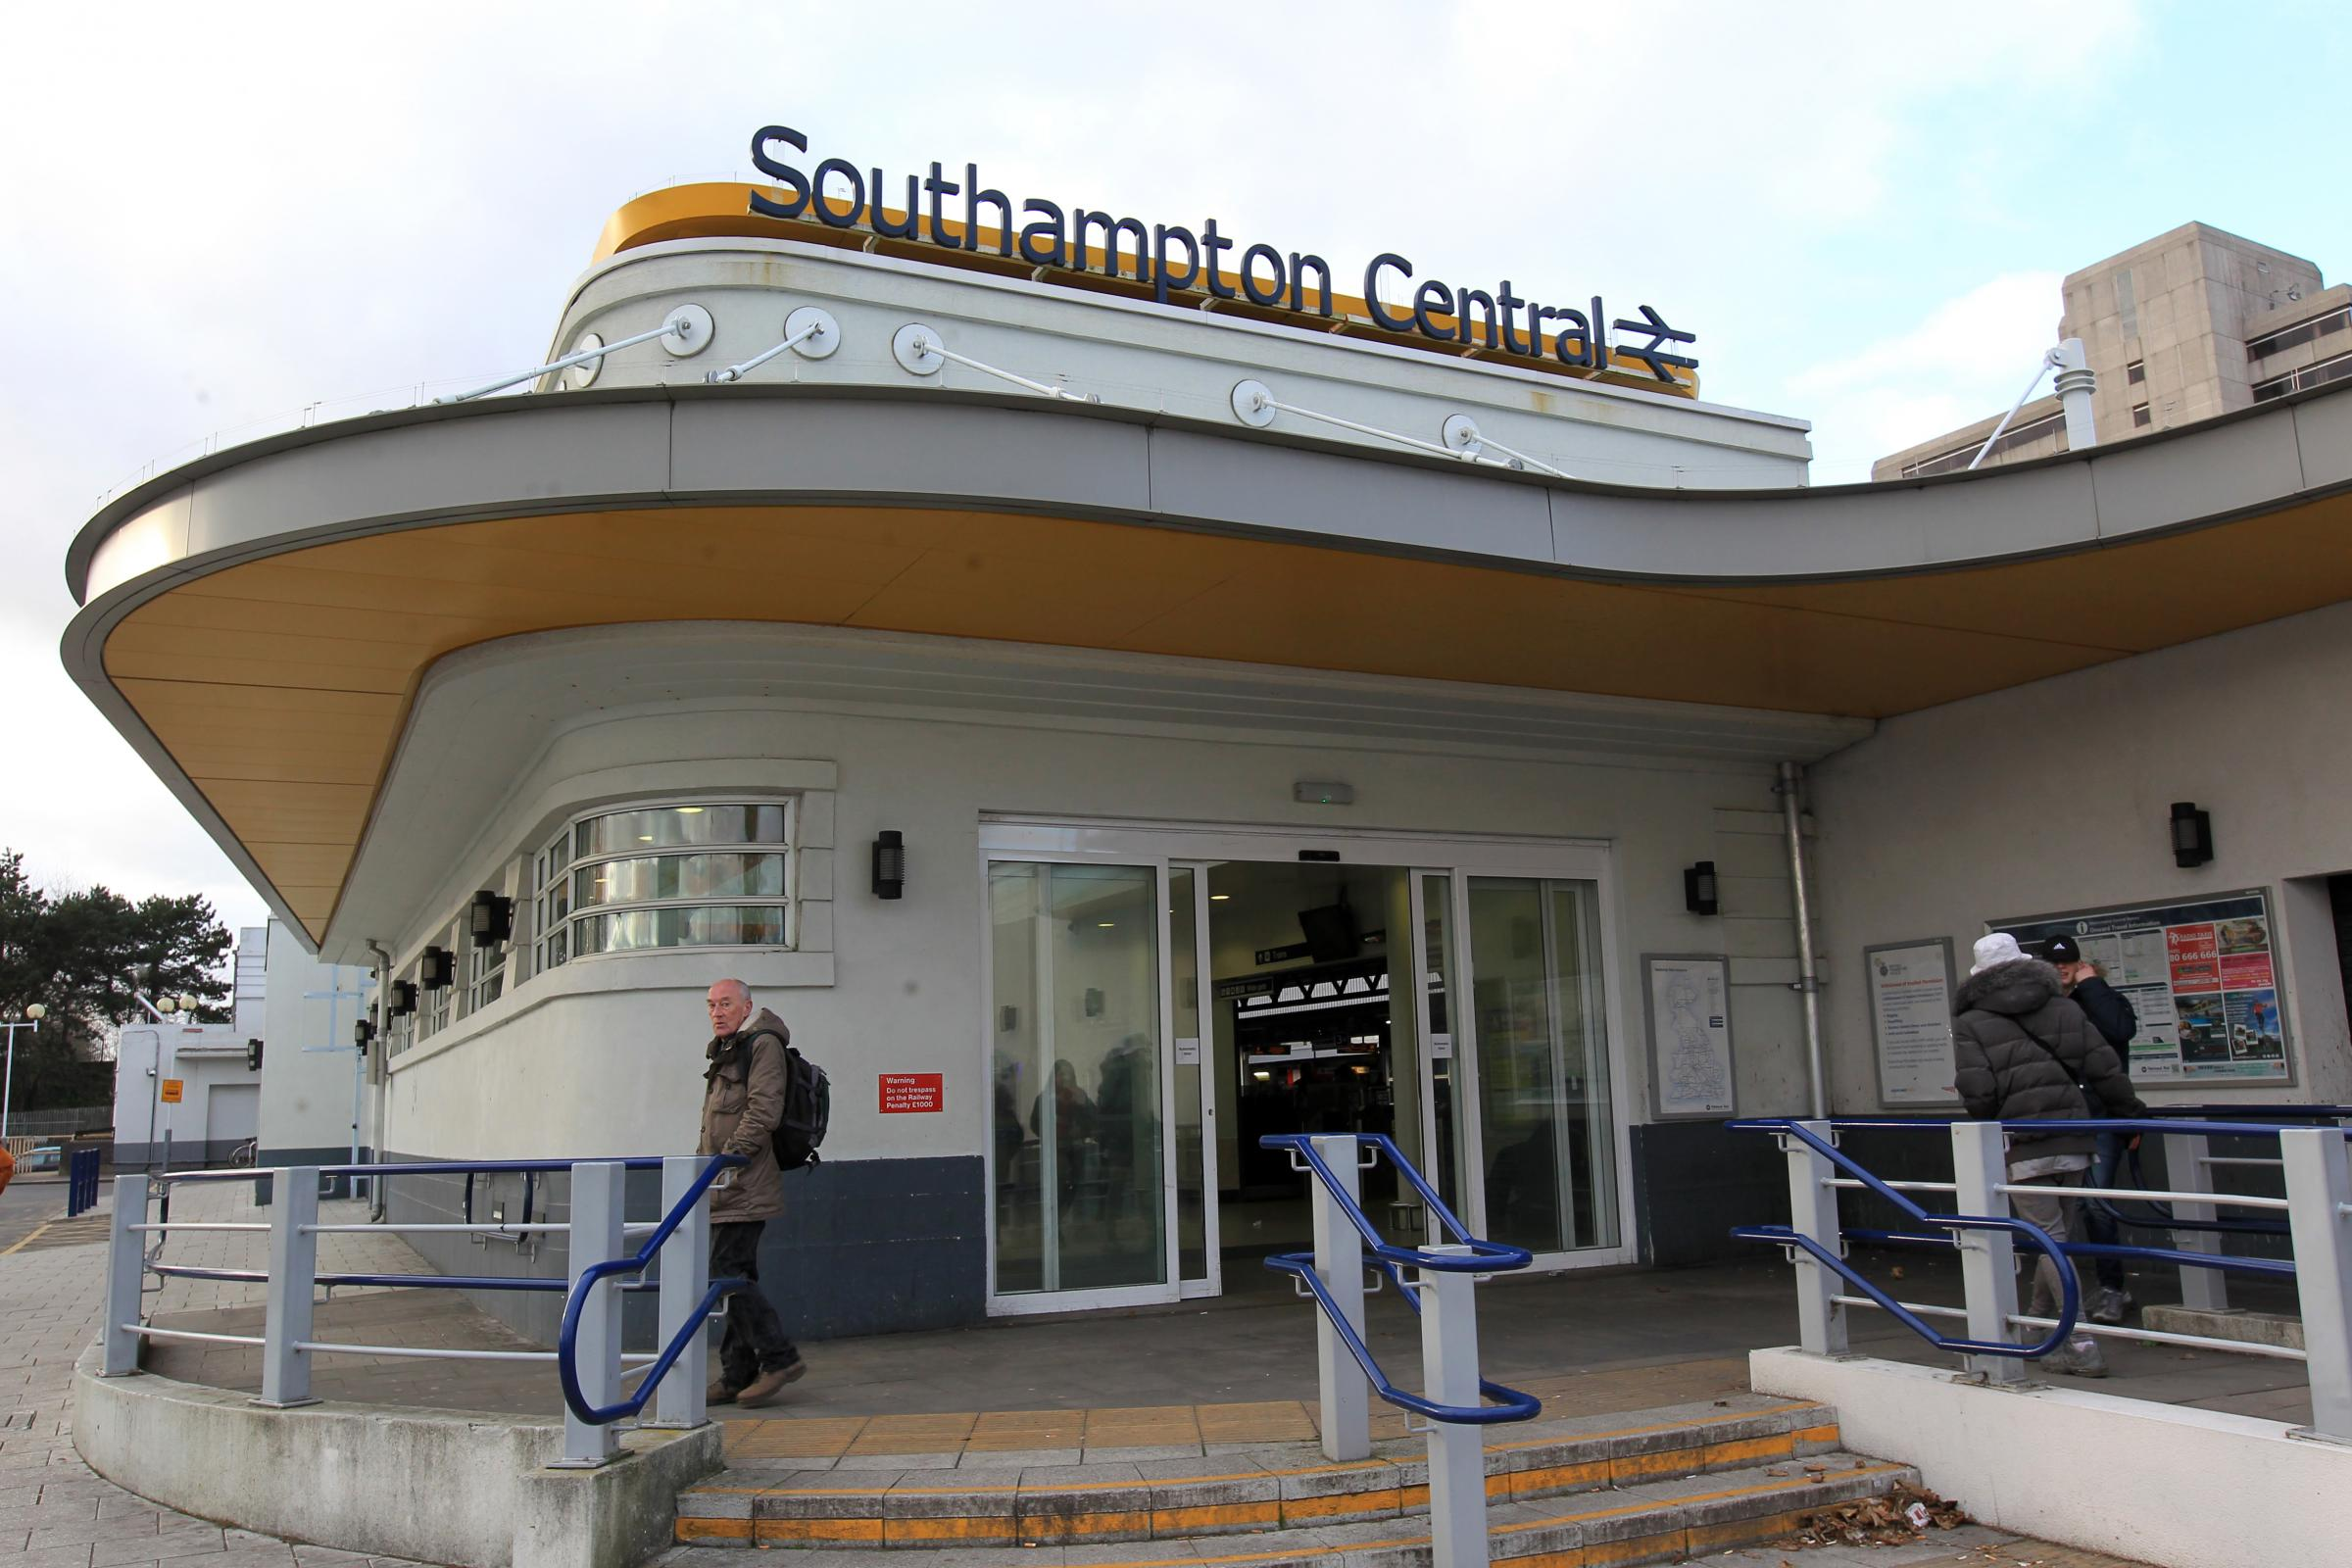 Southampton Central railway station